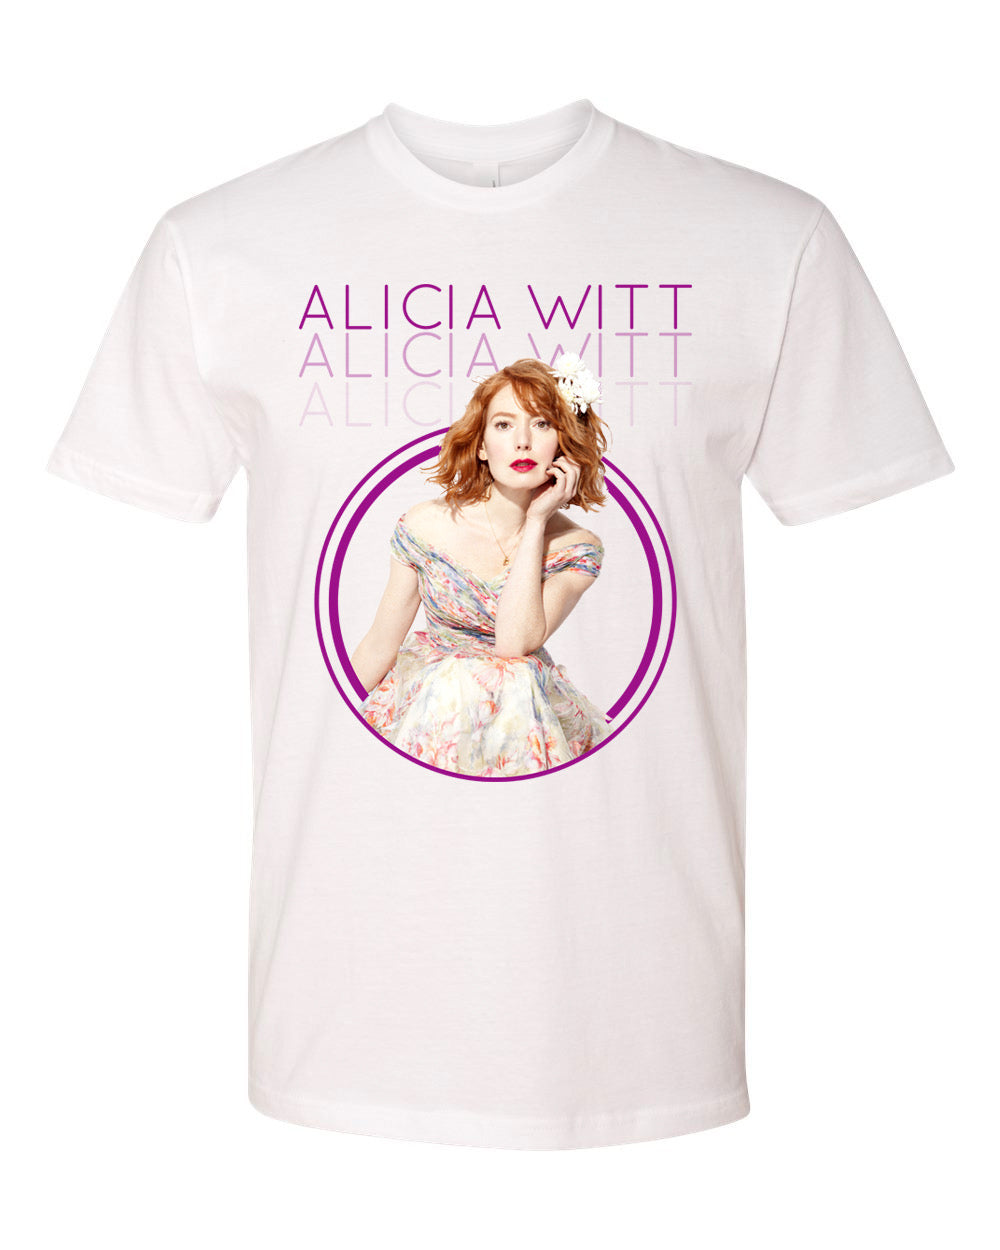 ALICIA WITT MAY TOUR T-SHIRT - EXTREMELY LIMITED! UNISEX